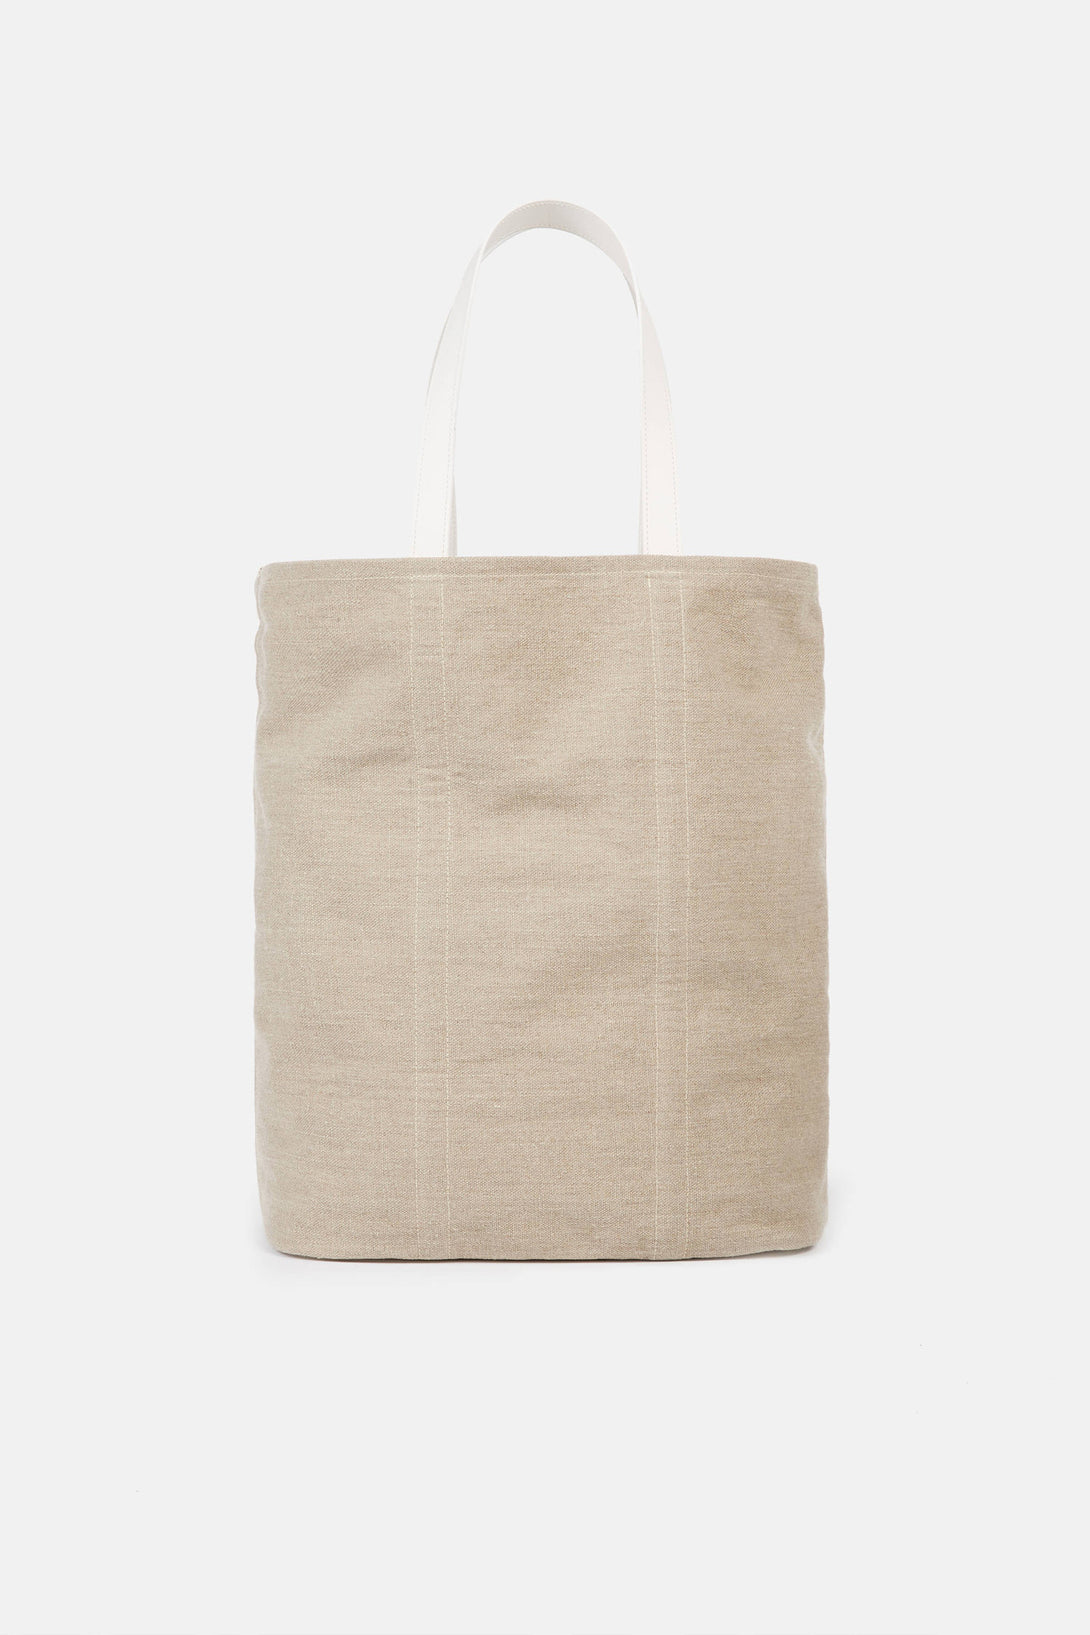 CM 15 Shopper - Natural White